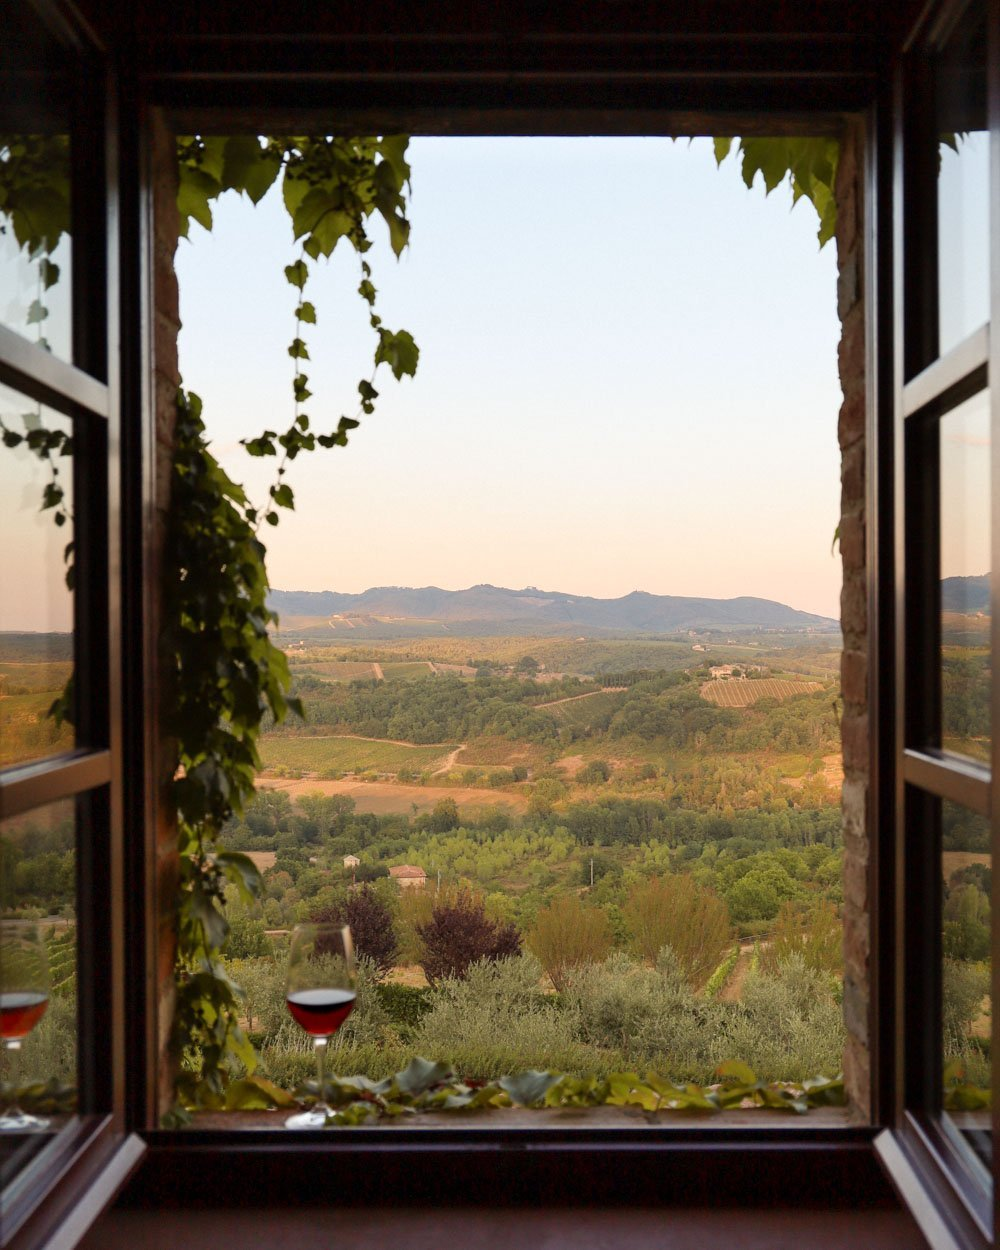 View from a window in Tuscany